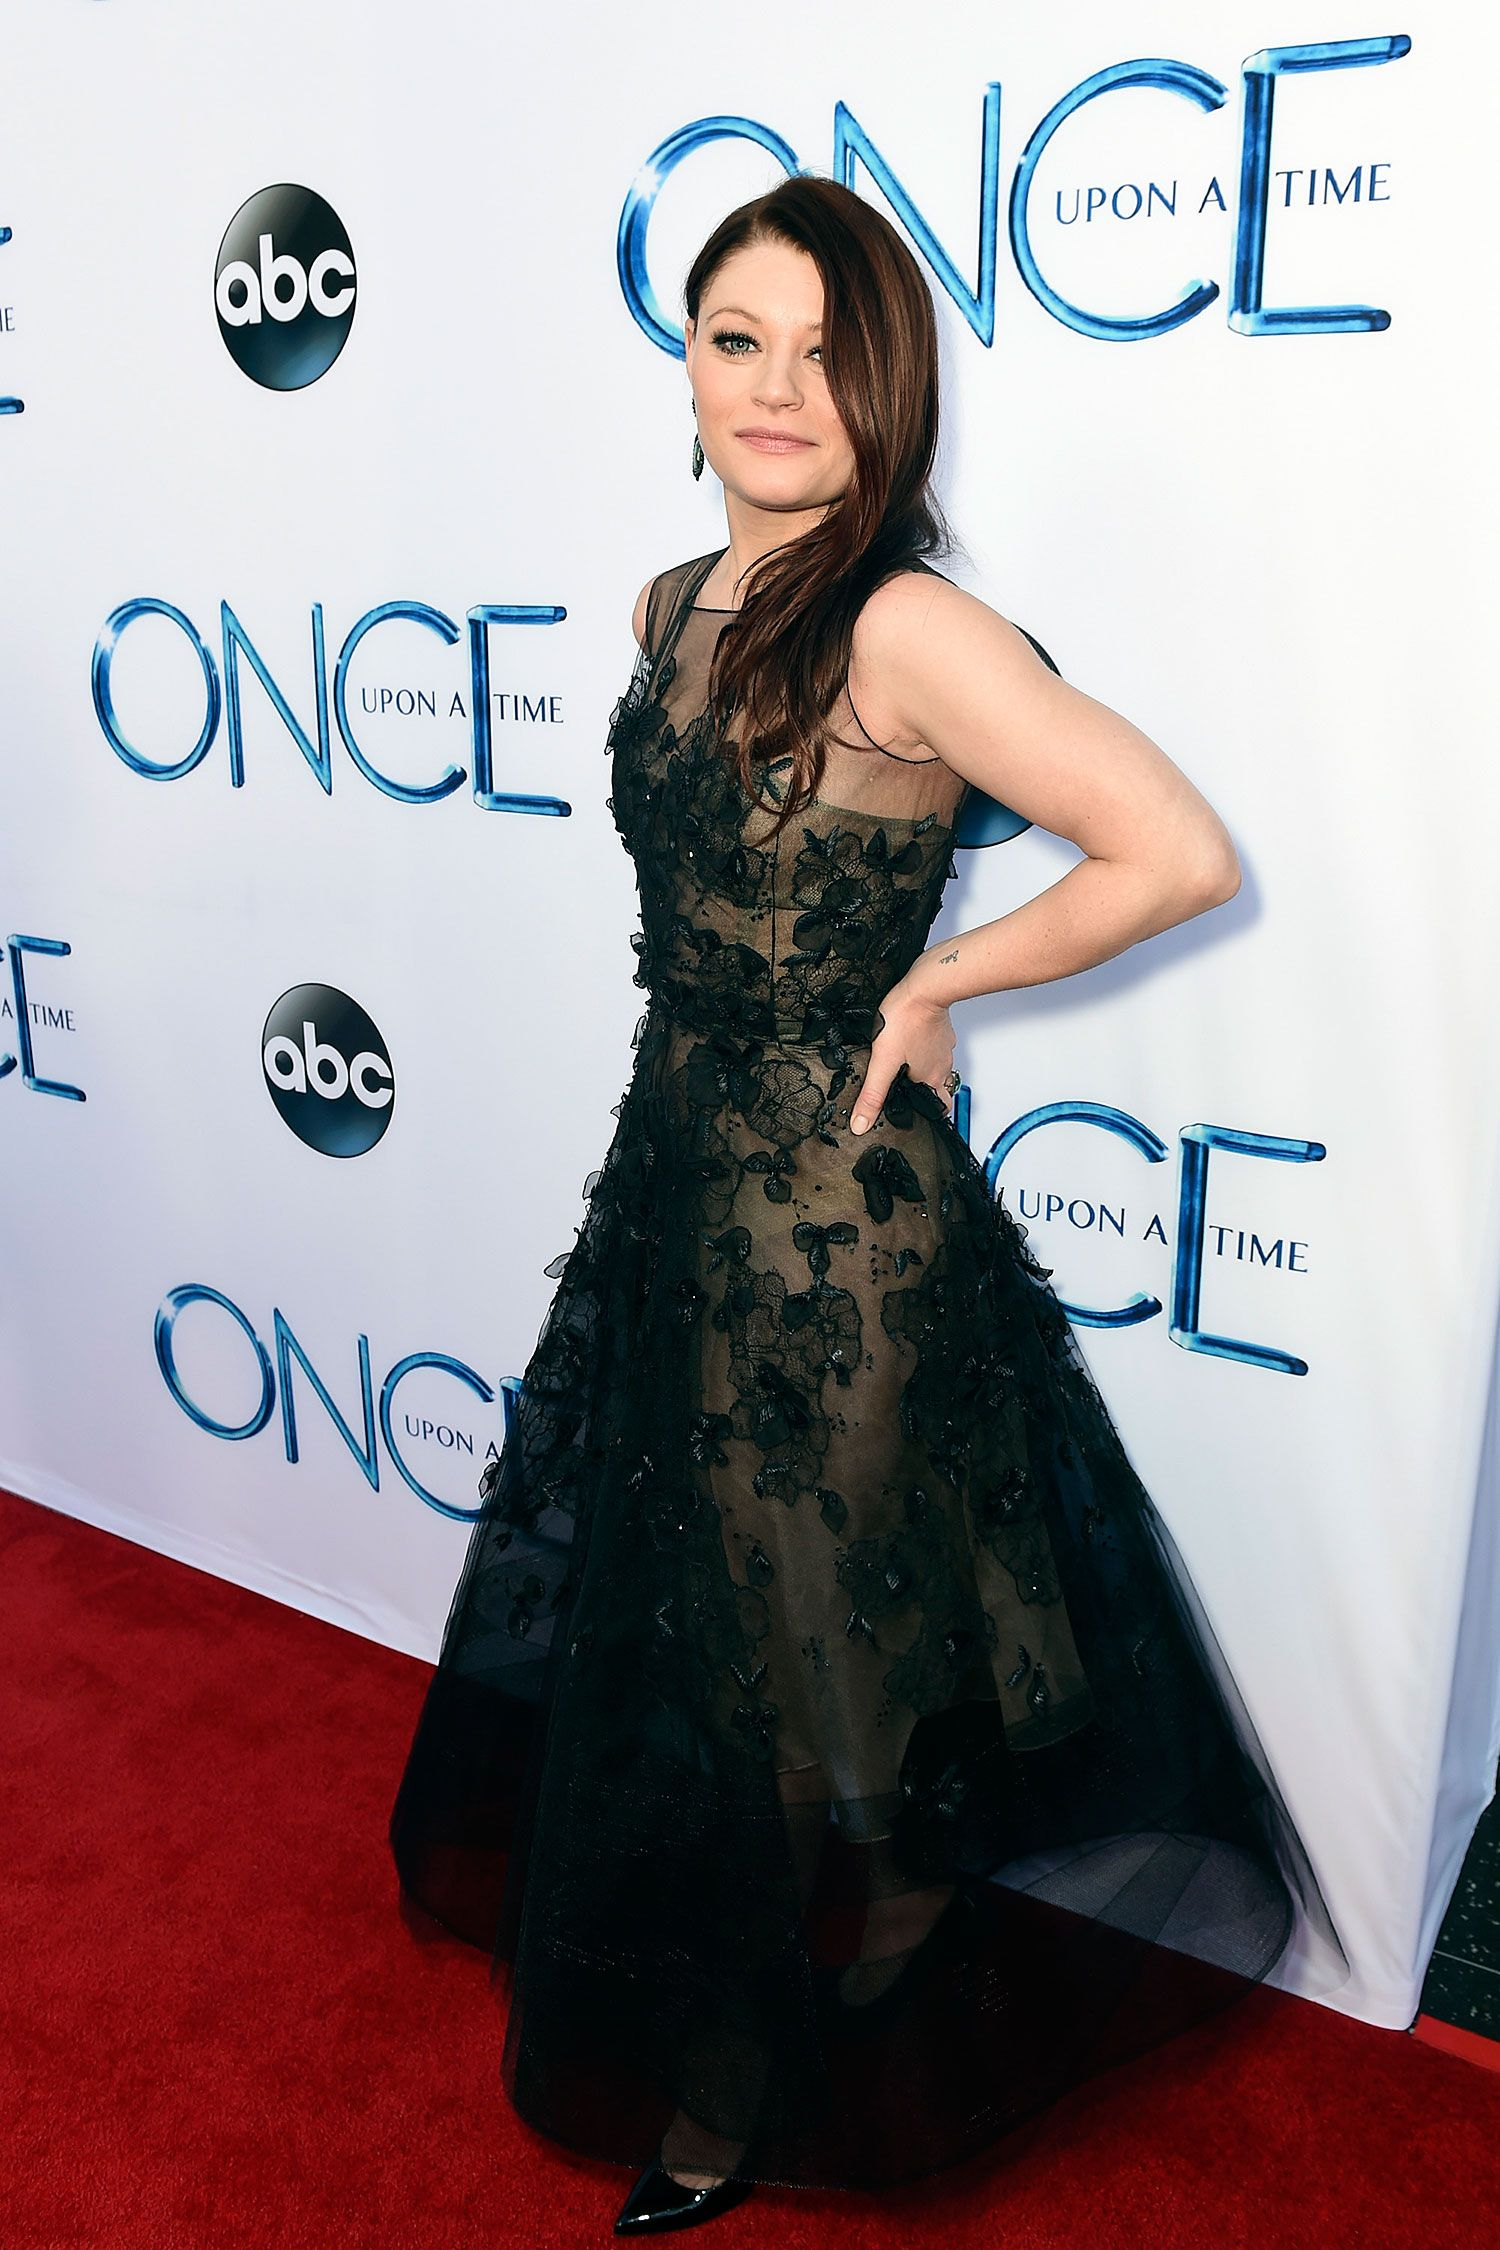 Emilie de Ravin attends a screening of ABC's 'Once Upon A Time' Season 4 at the El Capitan Theatre on September 21, 2014 in Hollywood, California.